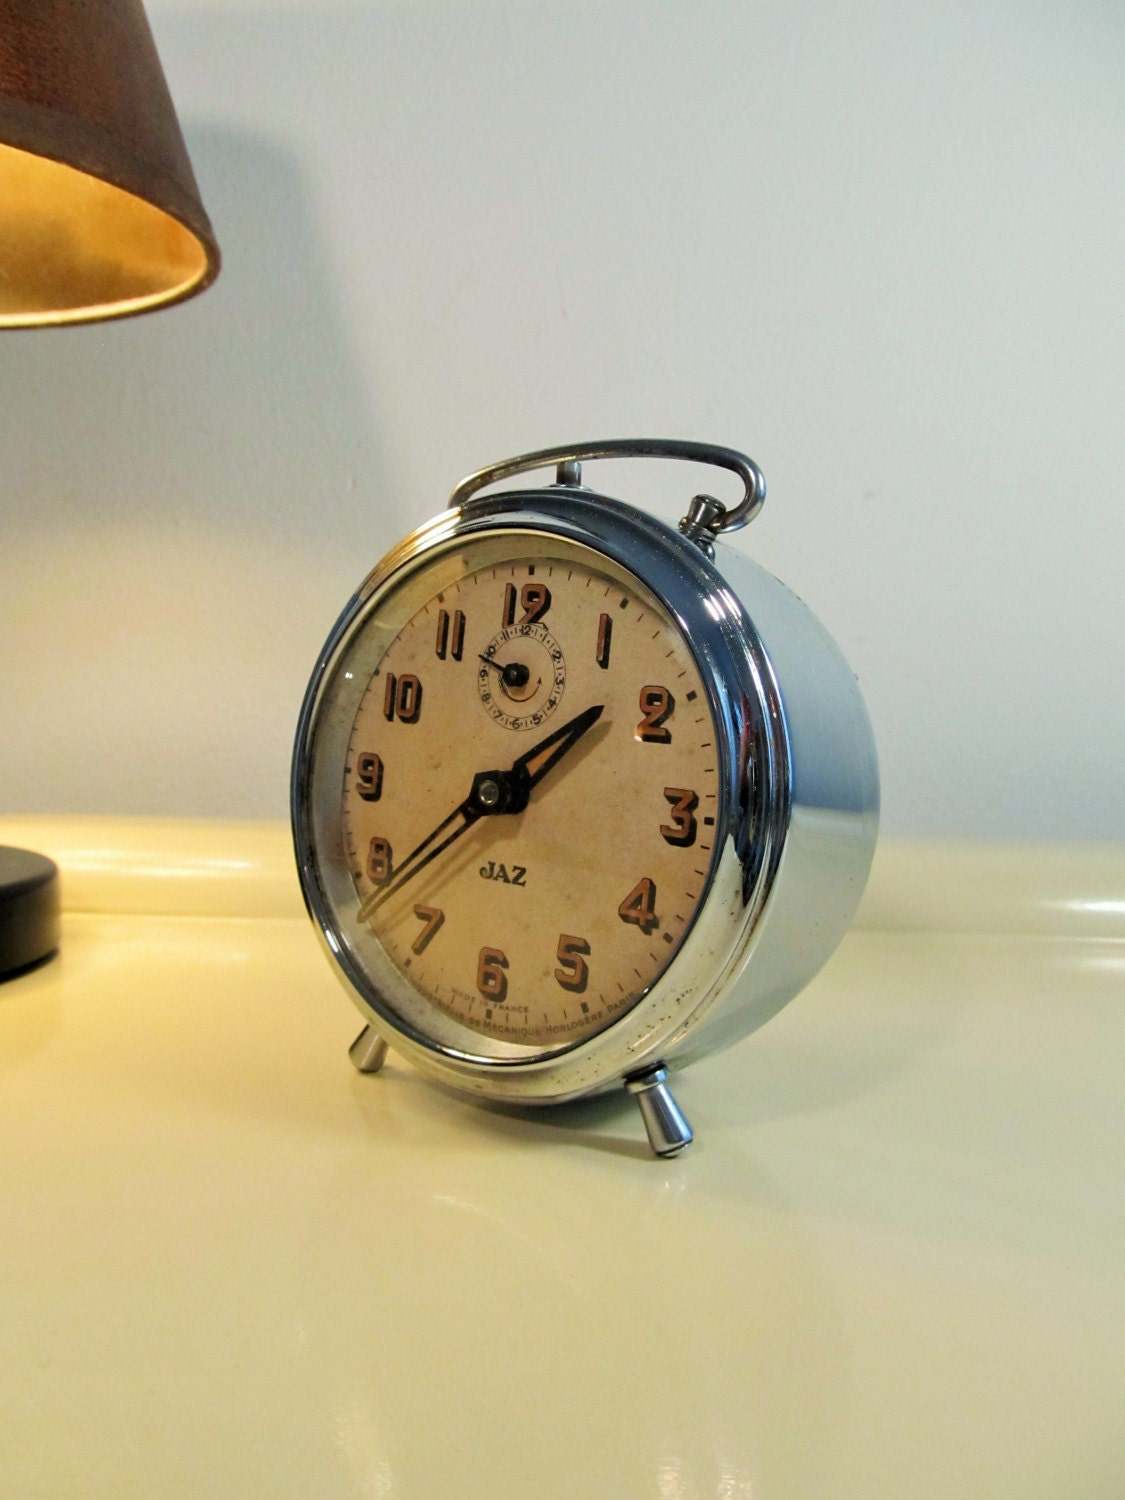 Vintage Alarm Clock Jaz Brand Chrome Made In France 1930s